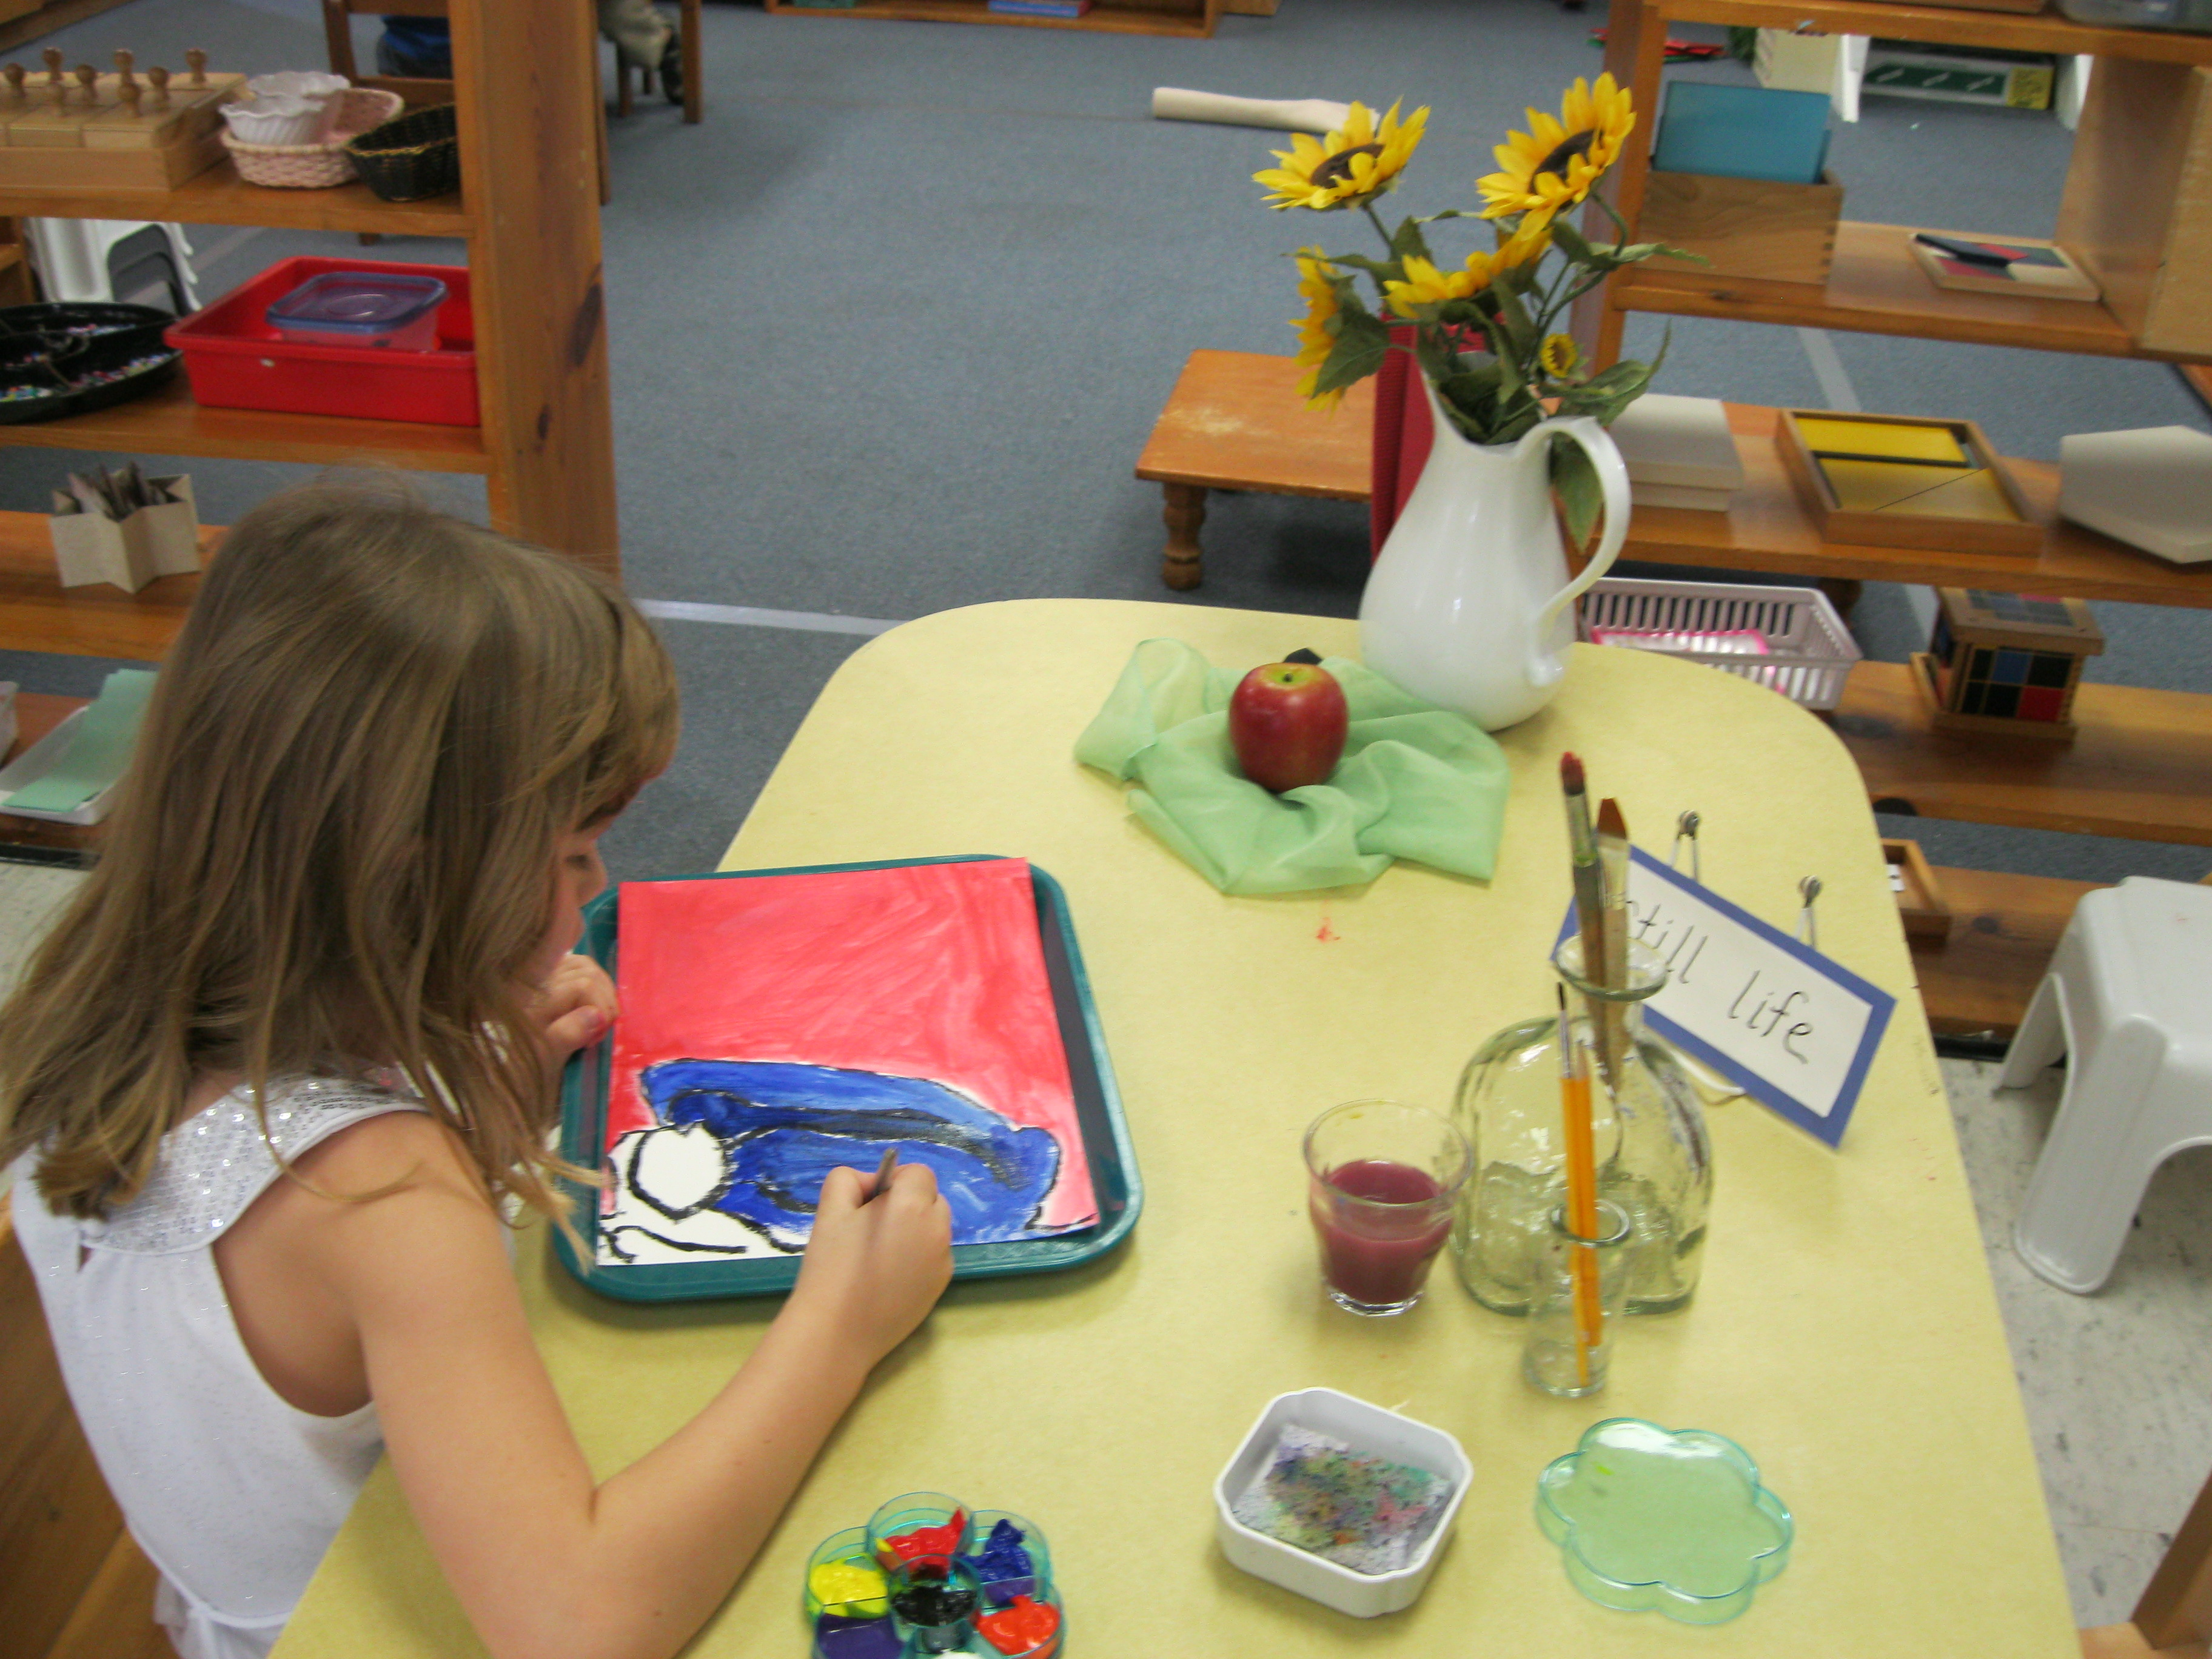 MSP student creating a still life painting